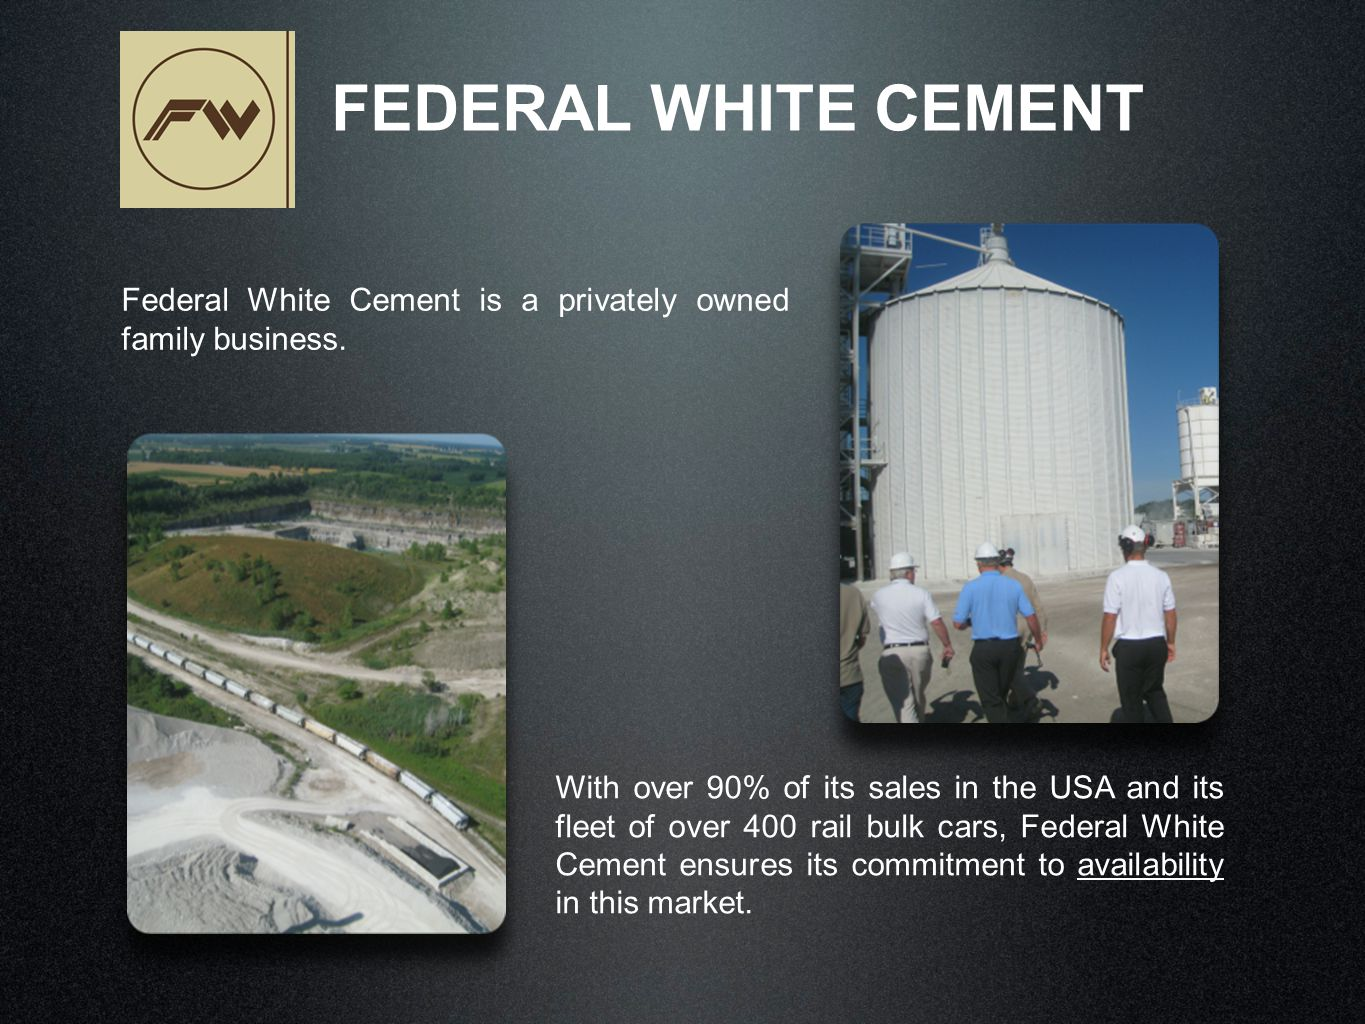 Federal White Cement is a privately owned family business. FEDERAL WHITE CEMENT With over 90% of its sales in the USA and its fleet of over 400 rail b